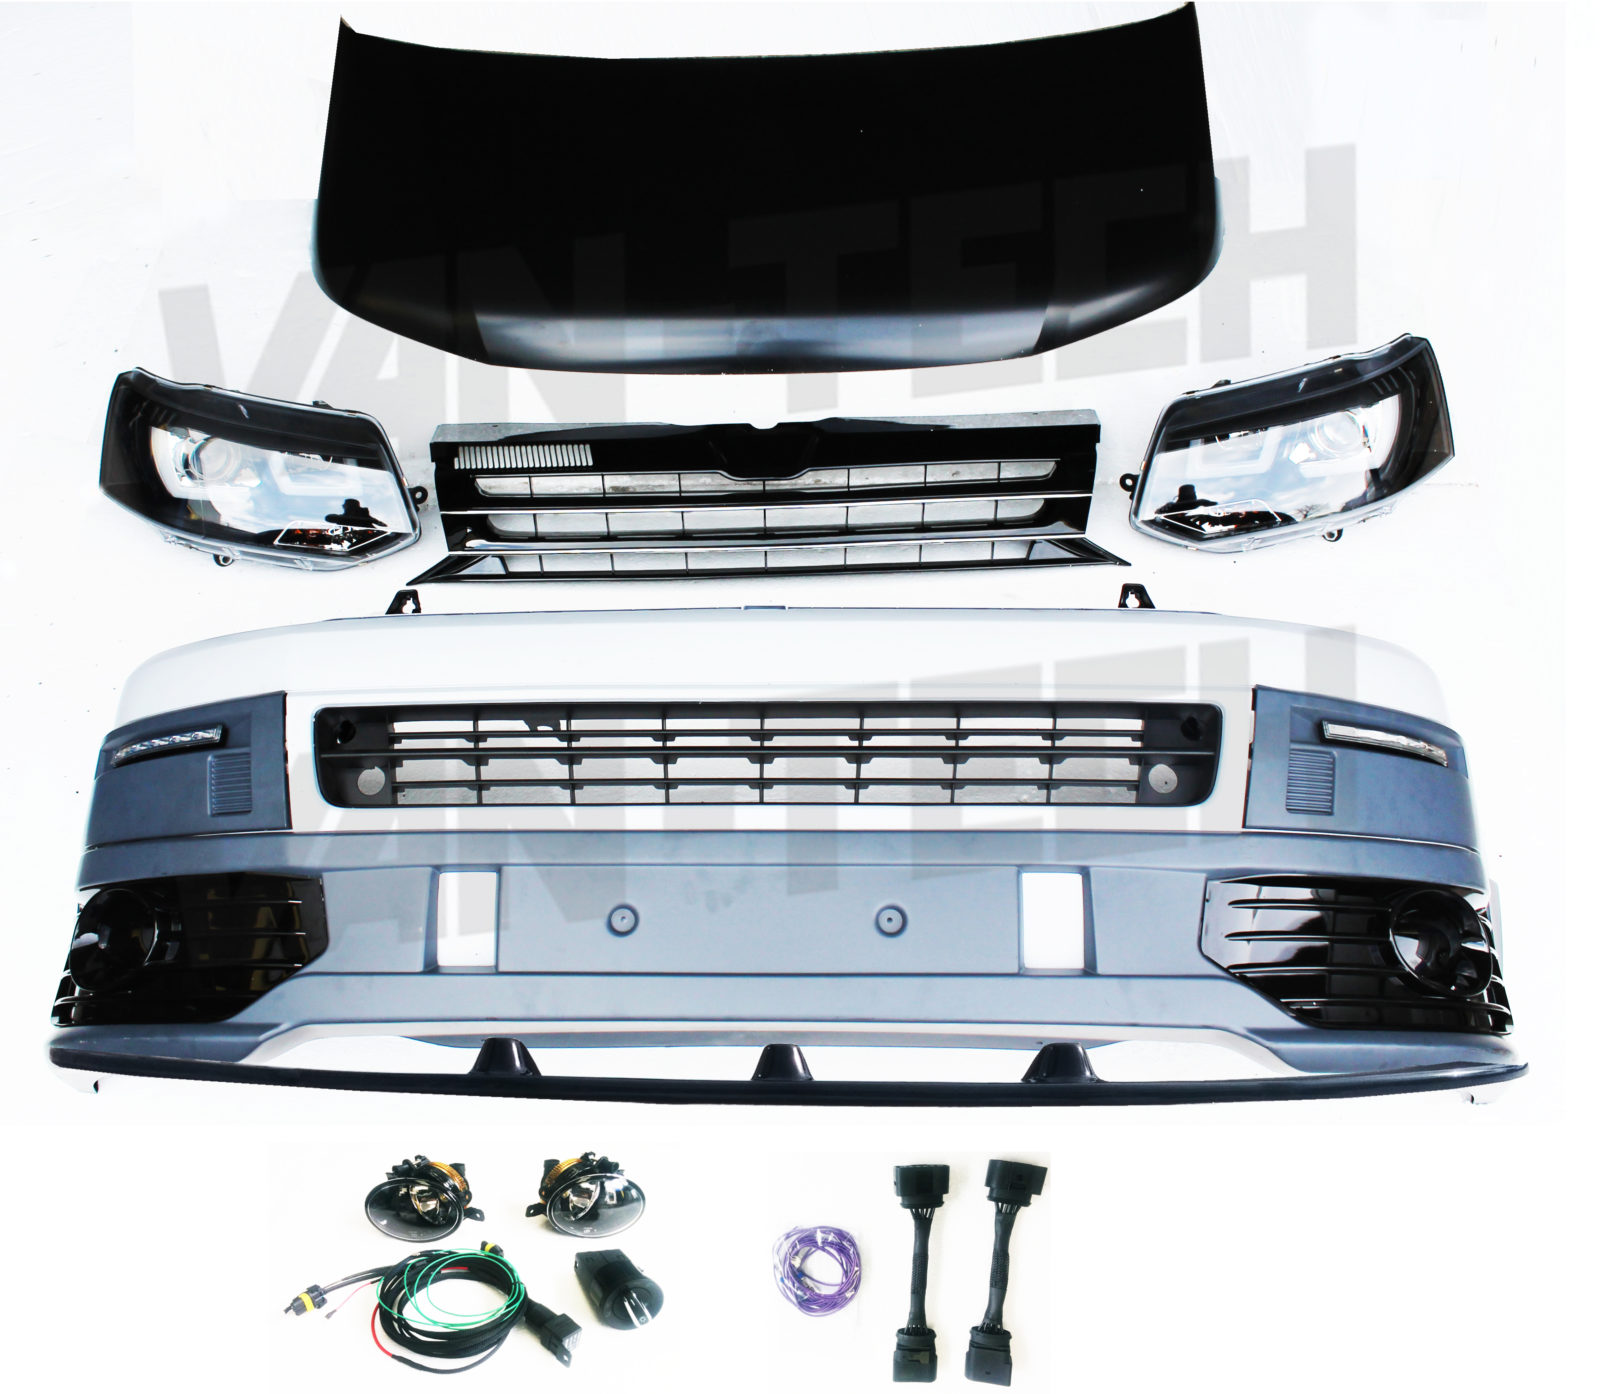 vw transporter styling pack new with wiring and lower splitter vw transporter t5 front end conversion styling pack includes vw t5 fog light wiring diagram at gsmx.co